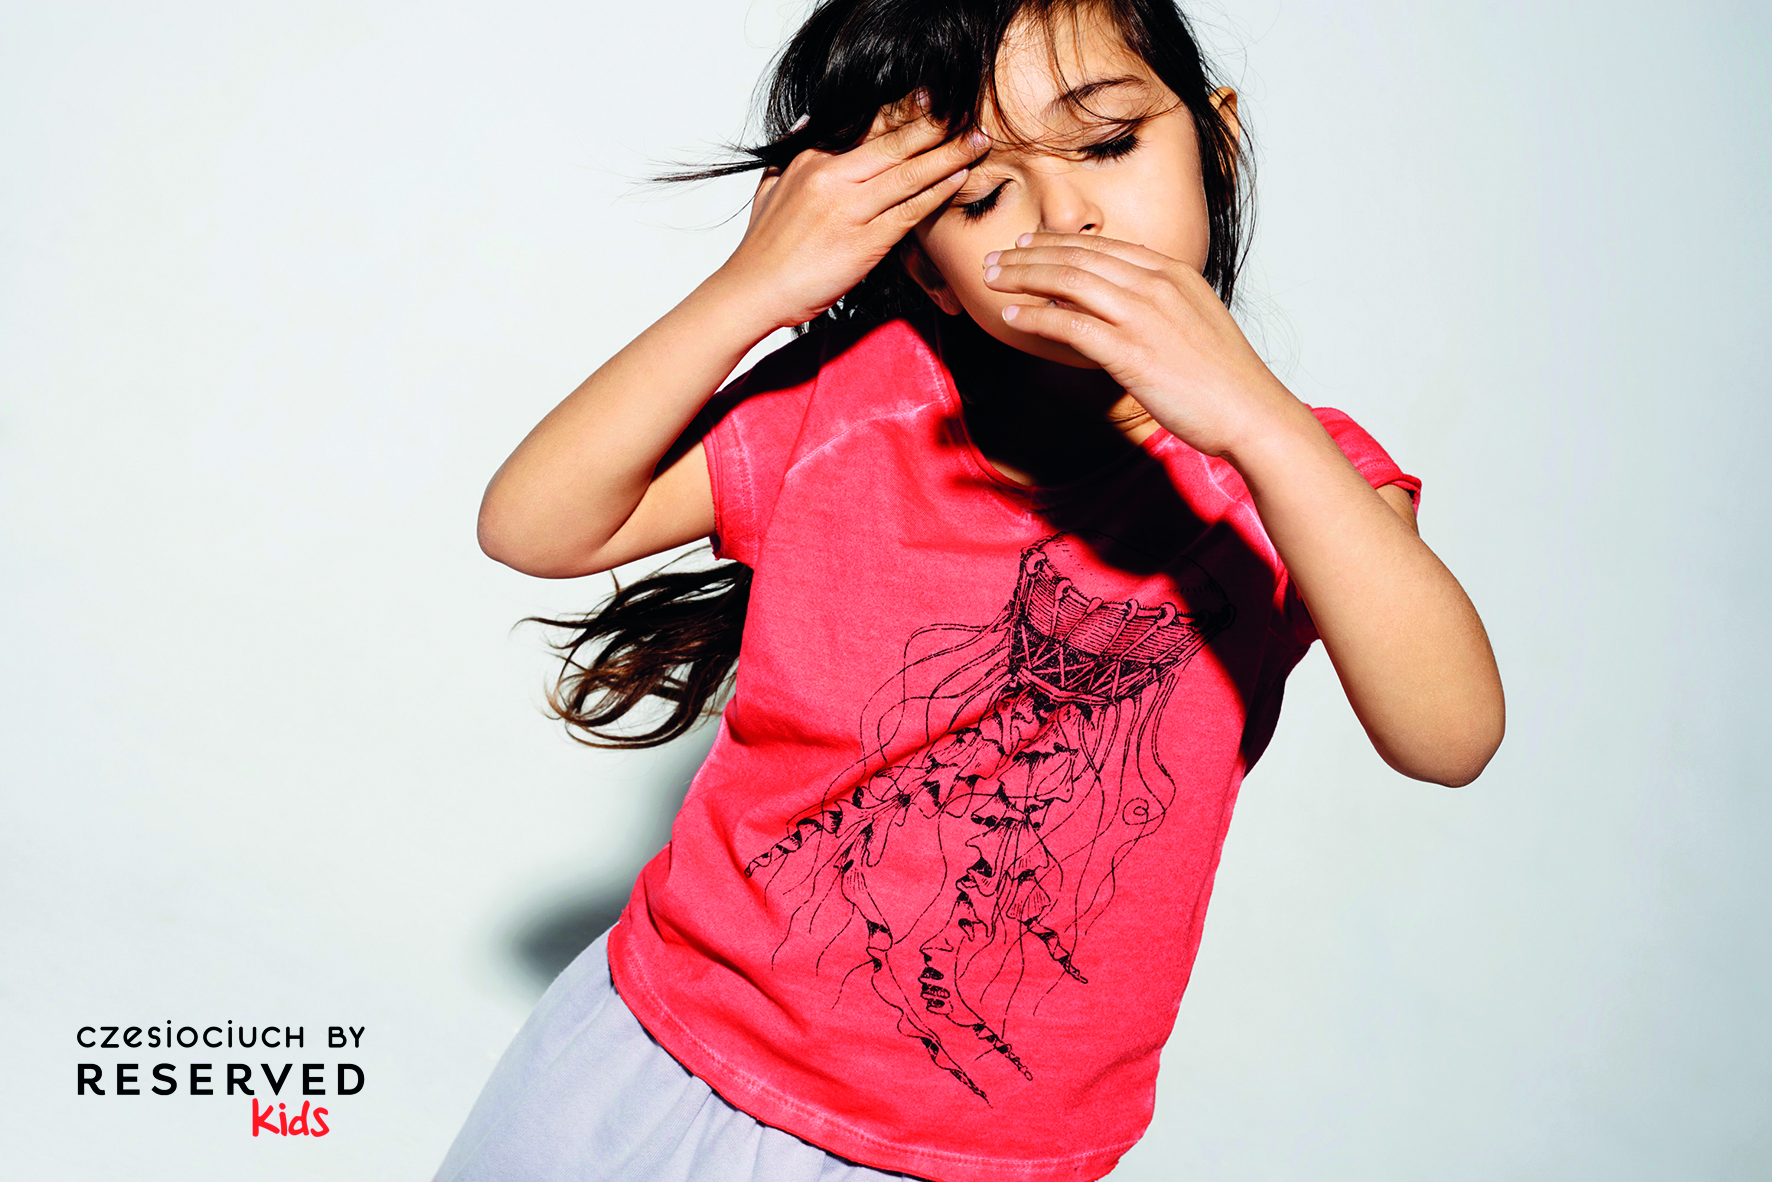 CZESIOCIUCH by RESERVED Kids